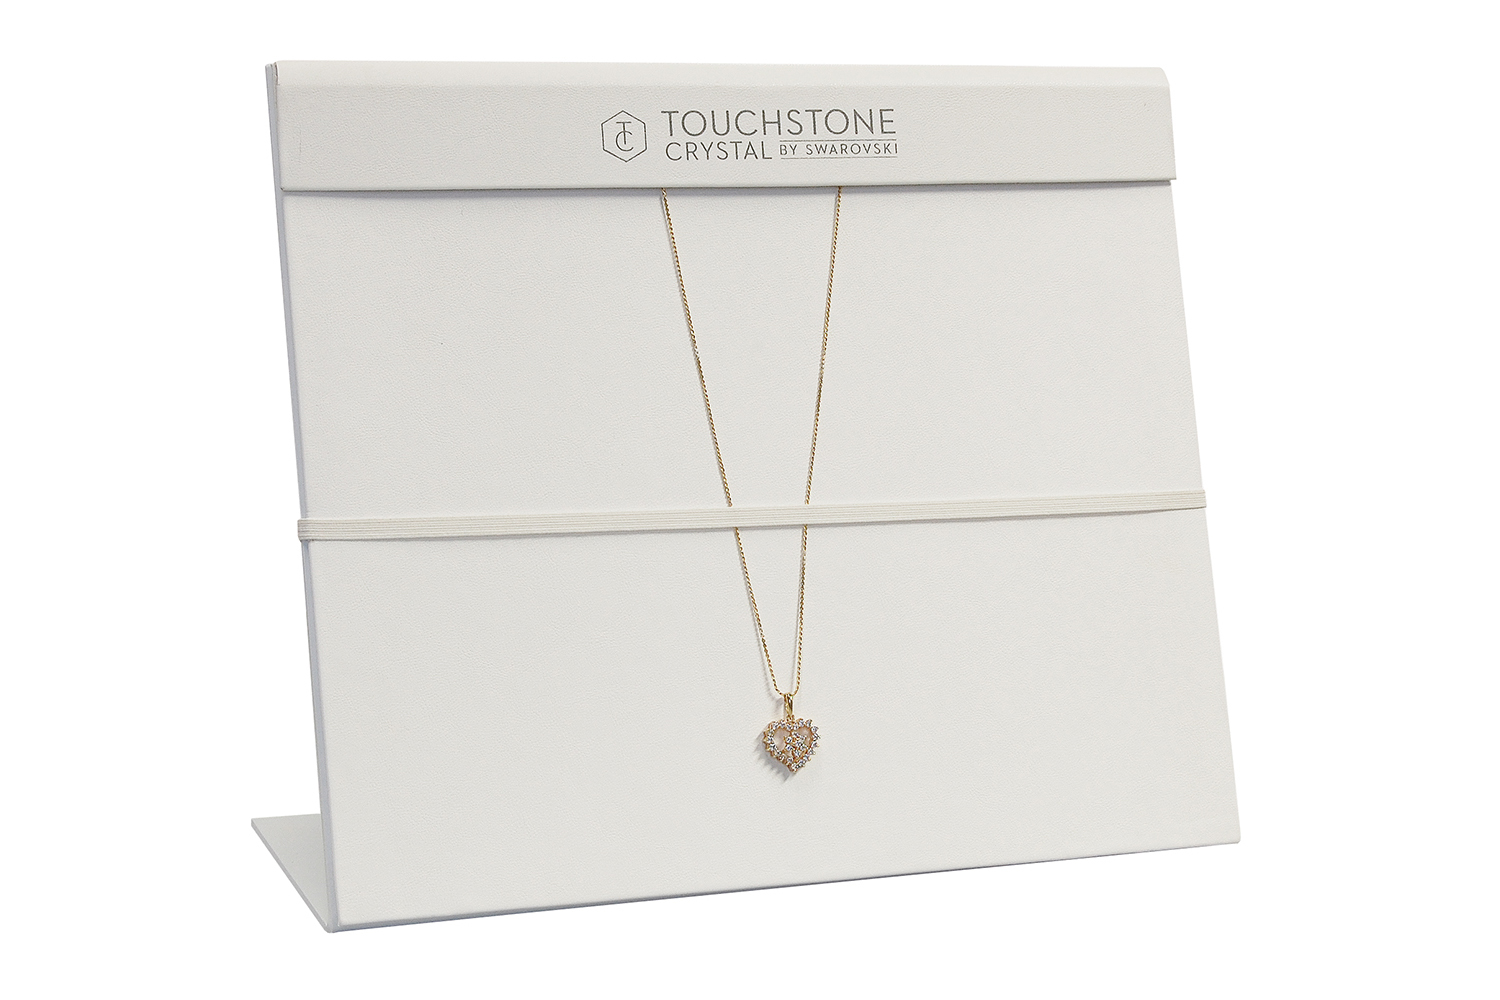 TOUCHSTONE Necklace Display.jpg